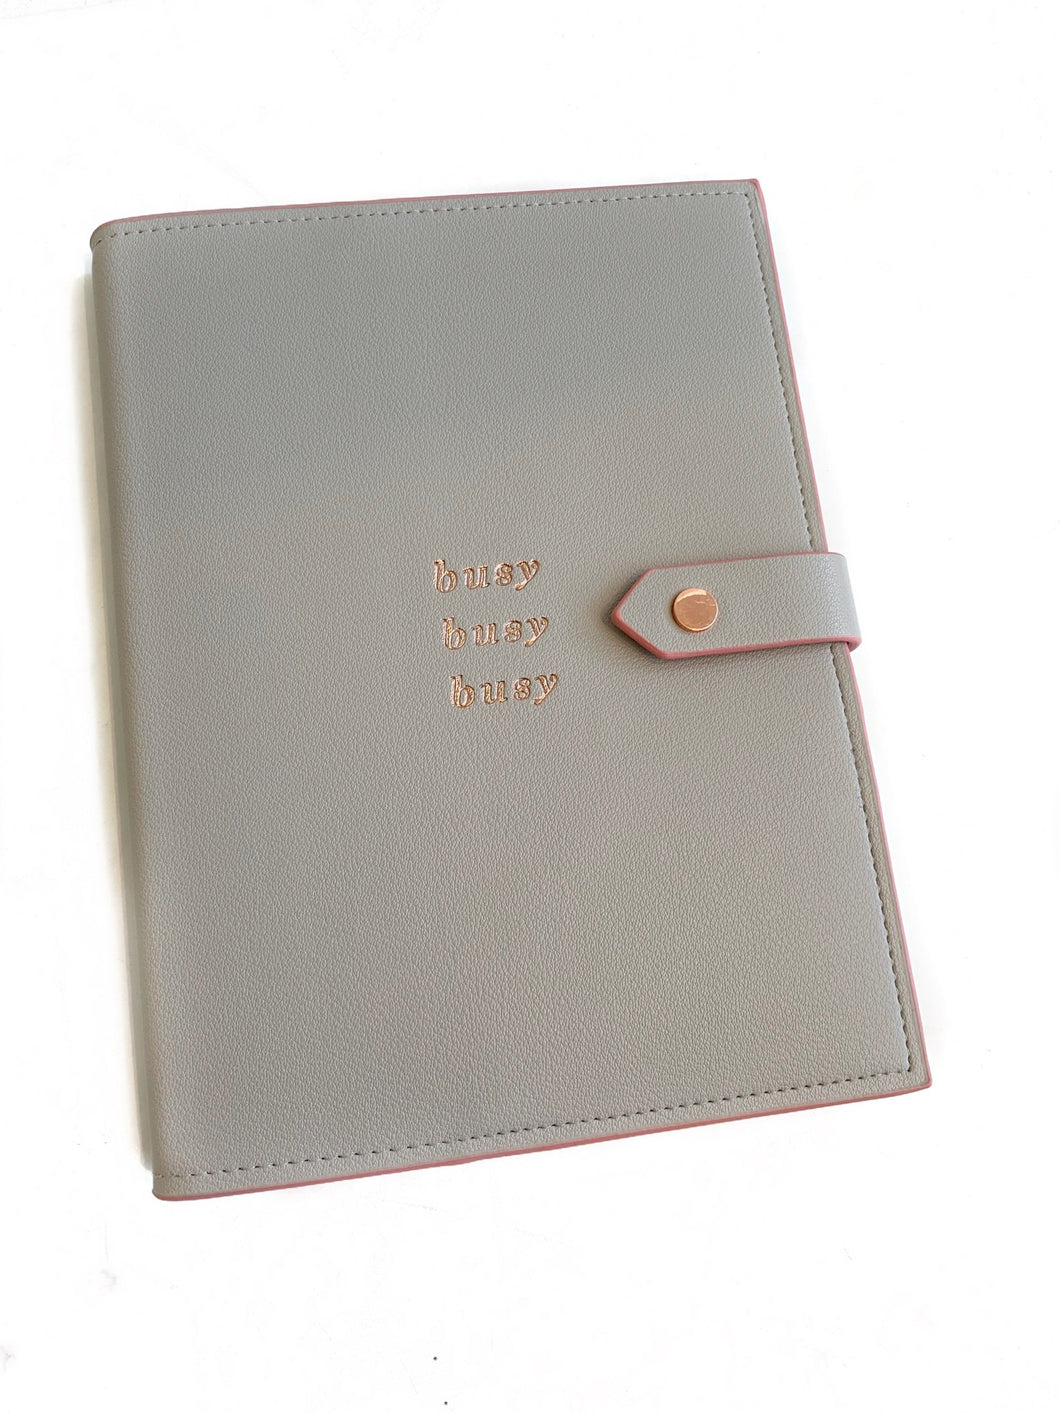 Busy Fx Leather Pcket Journal